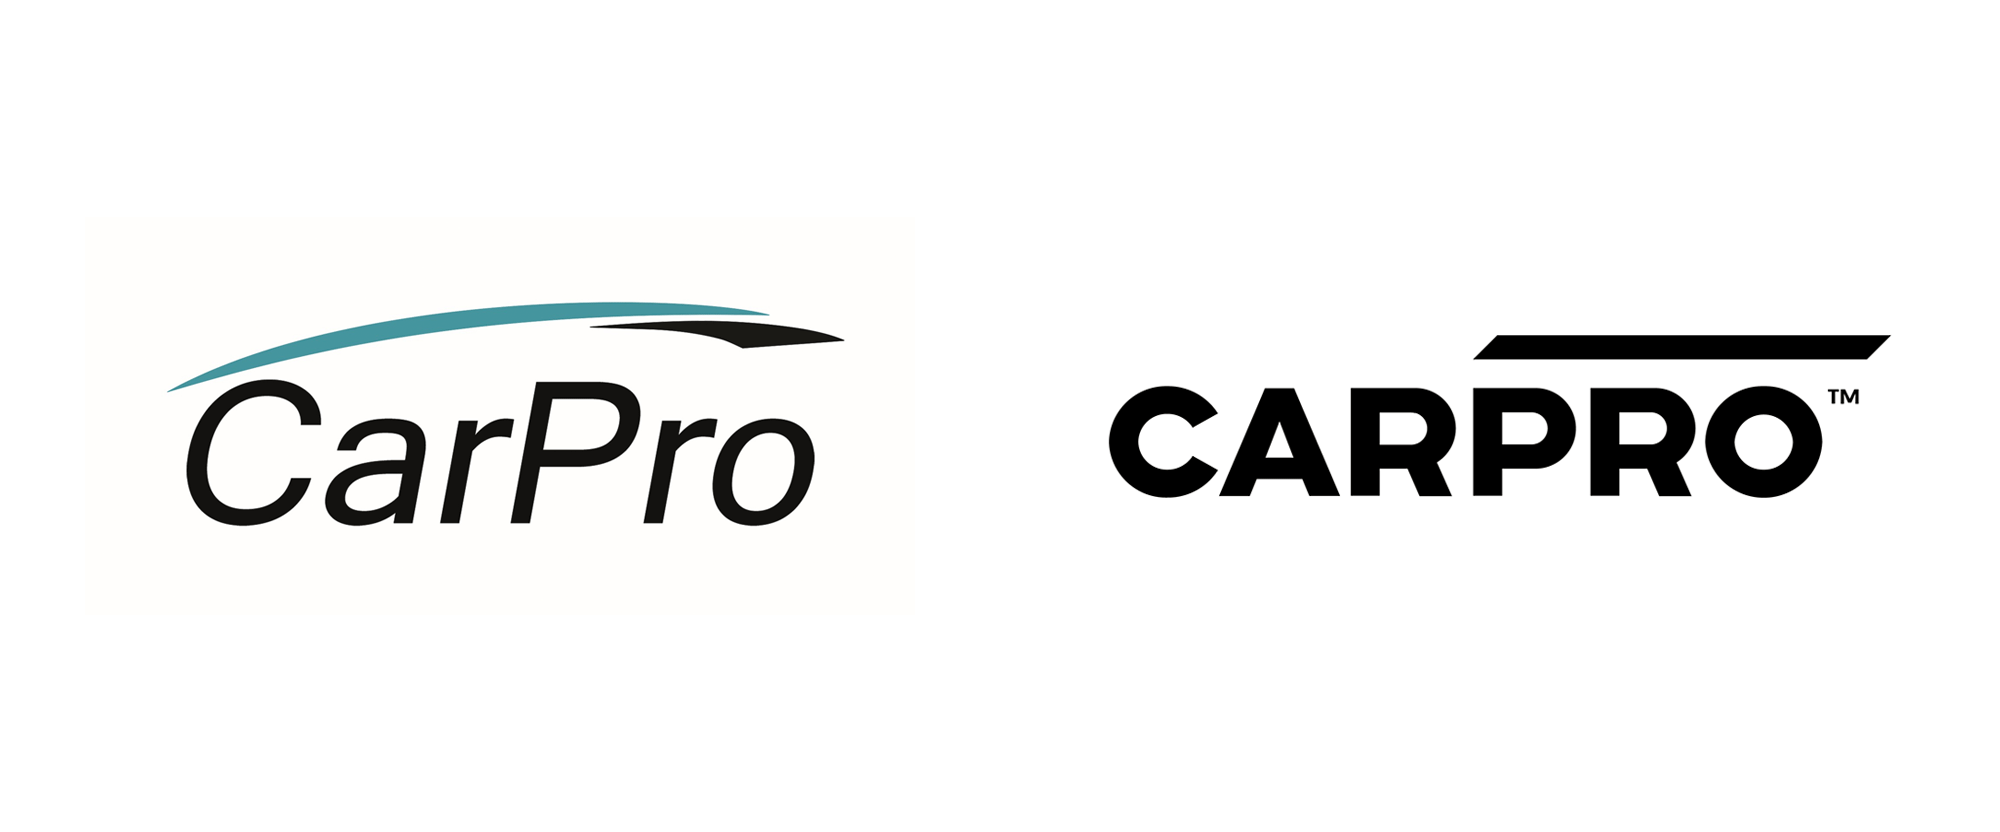 New Logo and Packaging for CARPRO by NECON